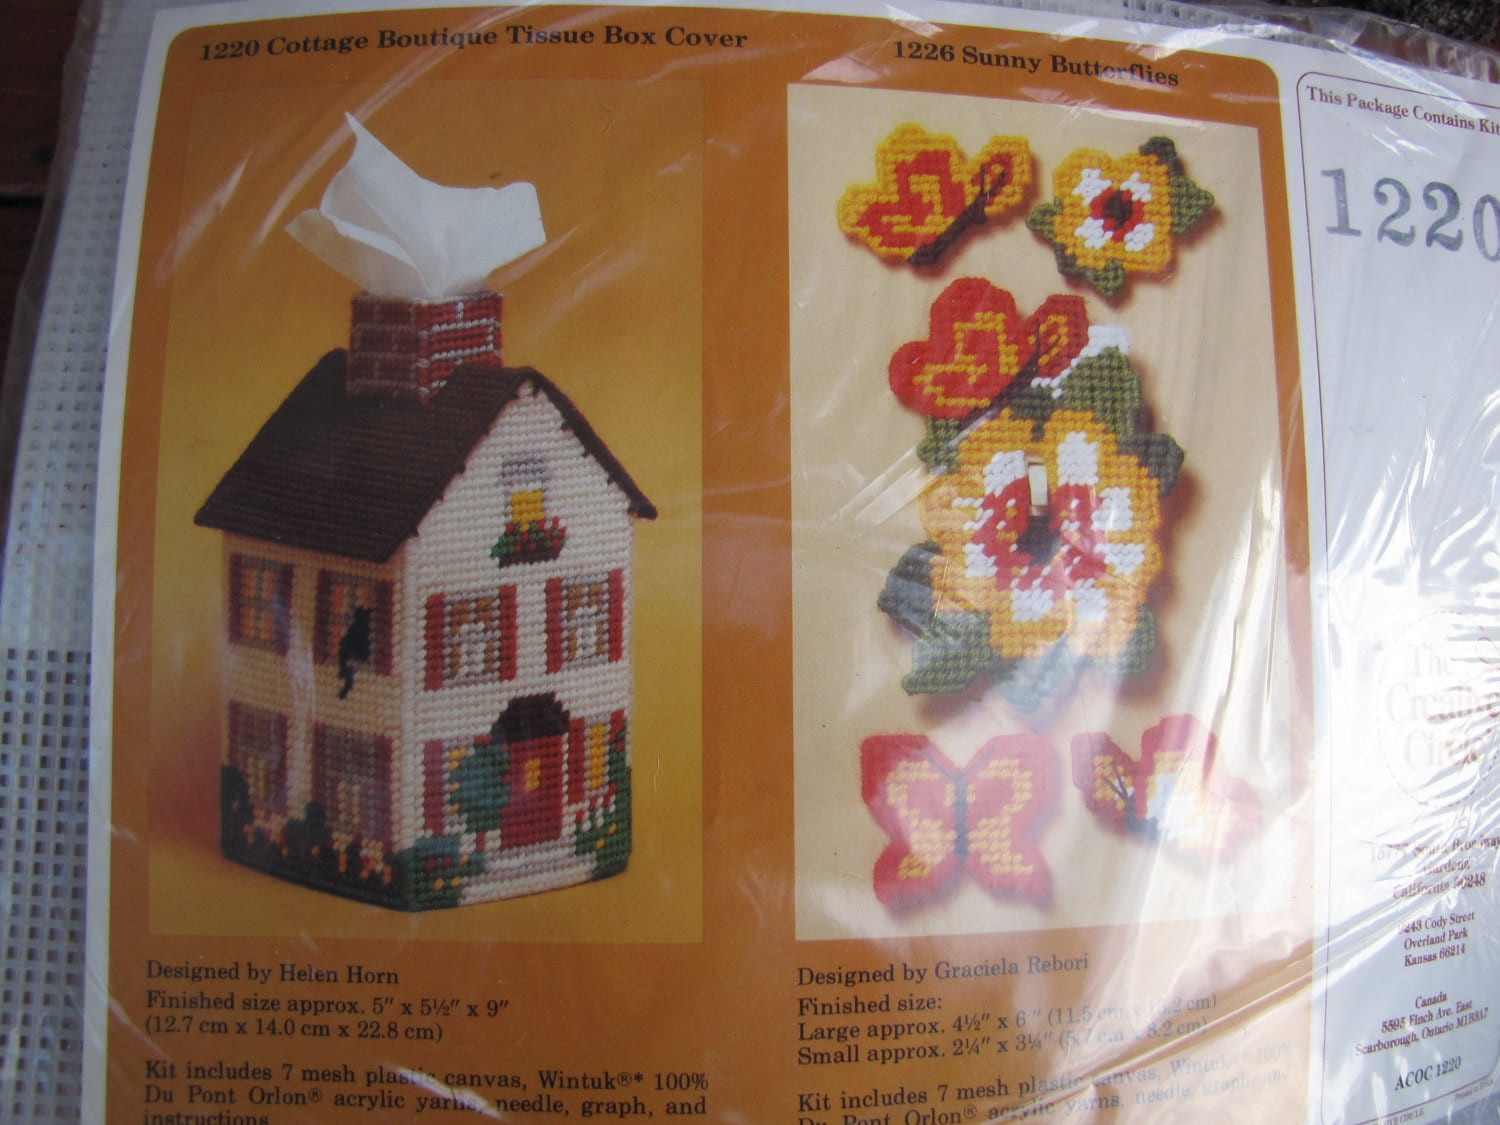 Tissue Box Houses 5 Designs Plastic Canvas PATTERN//INSTRUCTIONS Cat Bunny